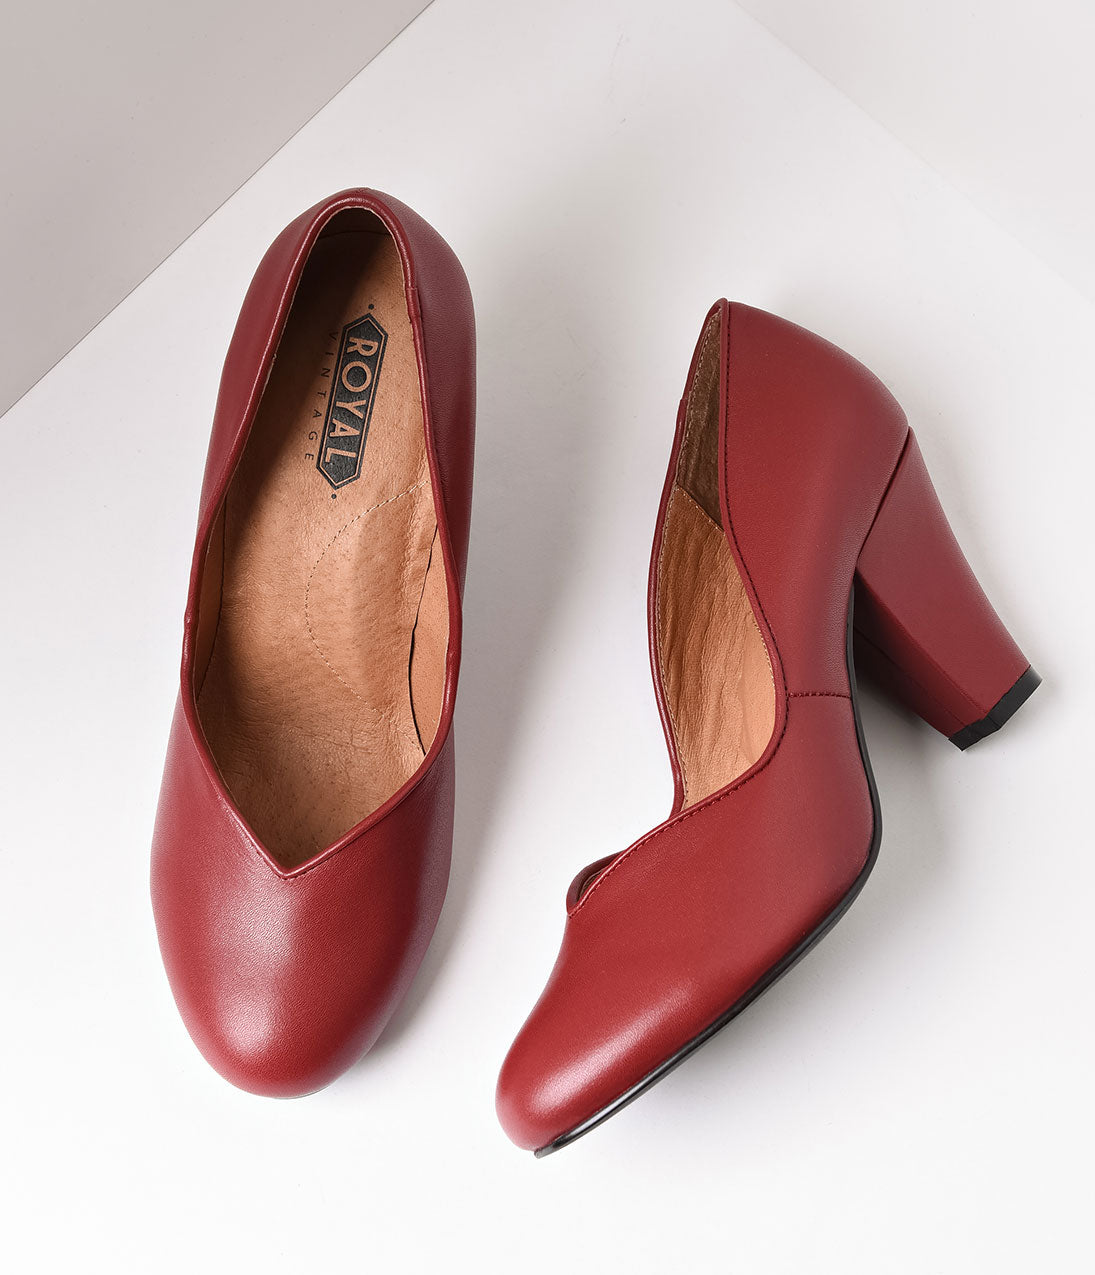 1940s Style Shoes, 40s Shoes Royal Vintage 1940S Style Burgundy Sweetheart Marilyn Pumps $150.00 AT vintagedancer.com